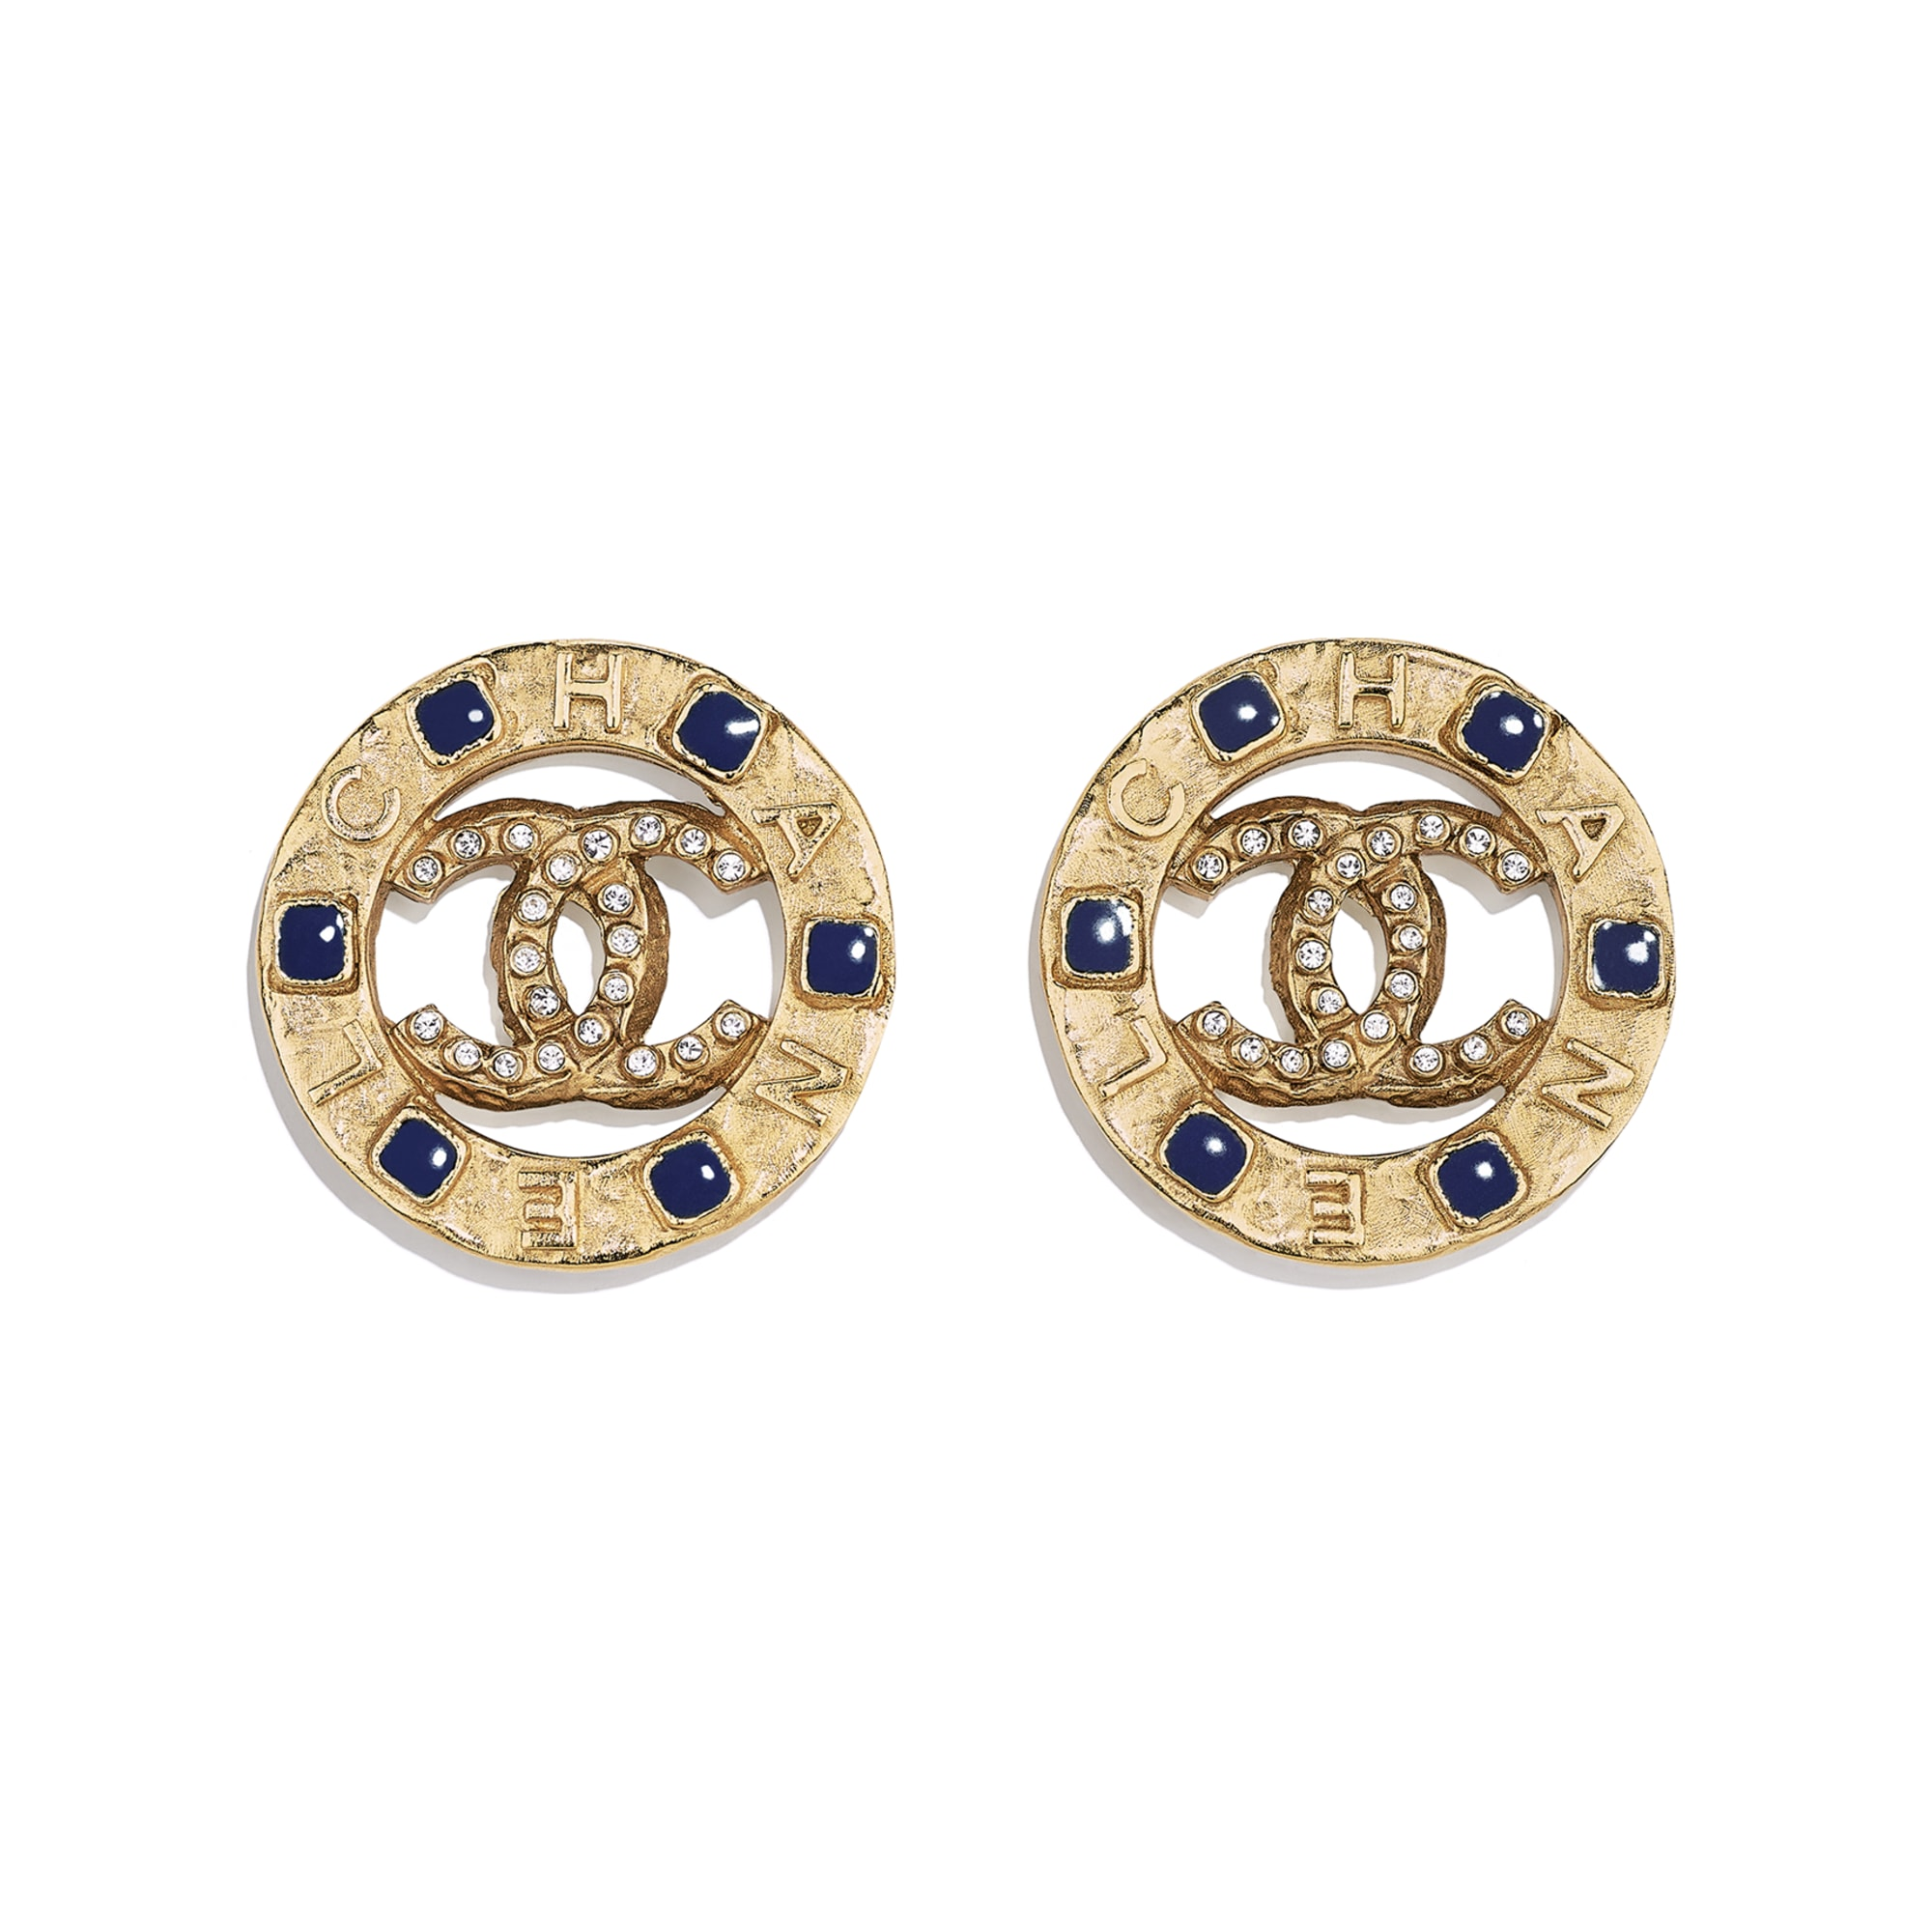 Clip-On Earrings - Gold, Crystal & Blue - Metal, Diamantés & Resin - CHANEL - Default view - see standard sized version